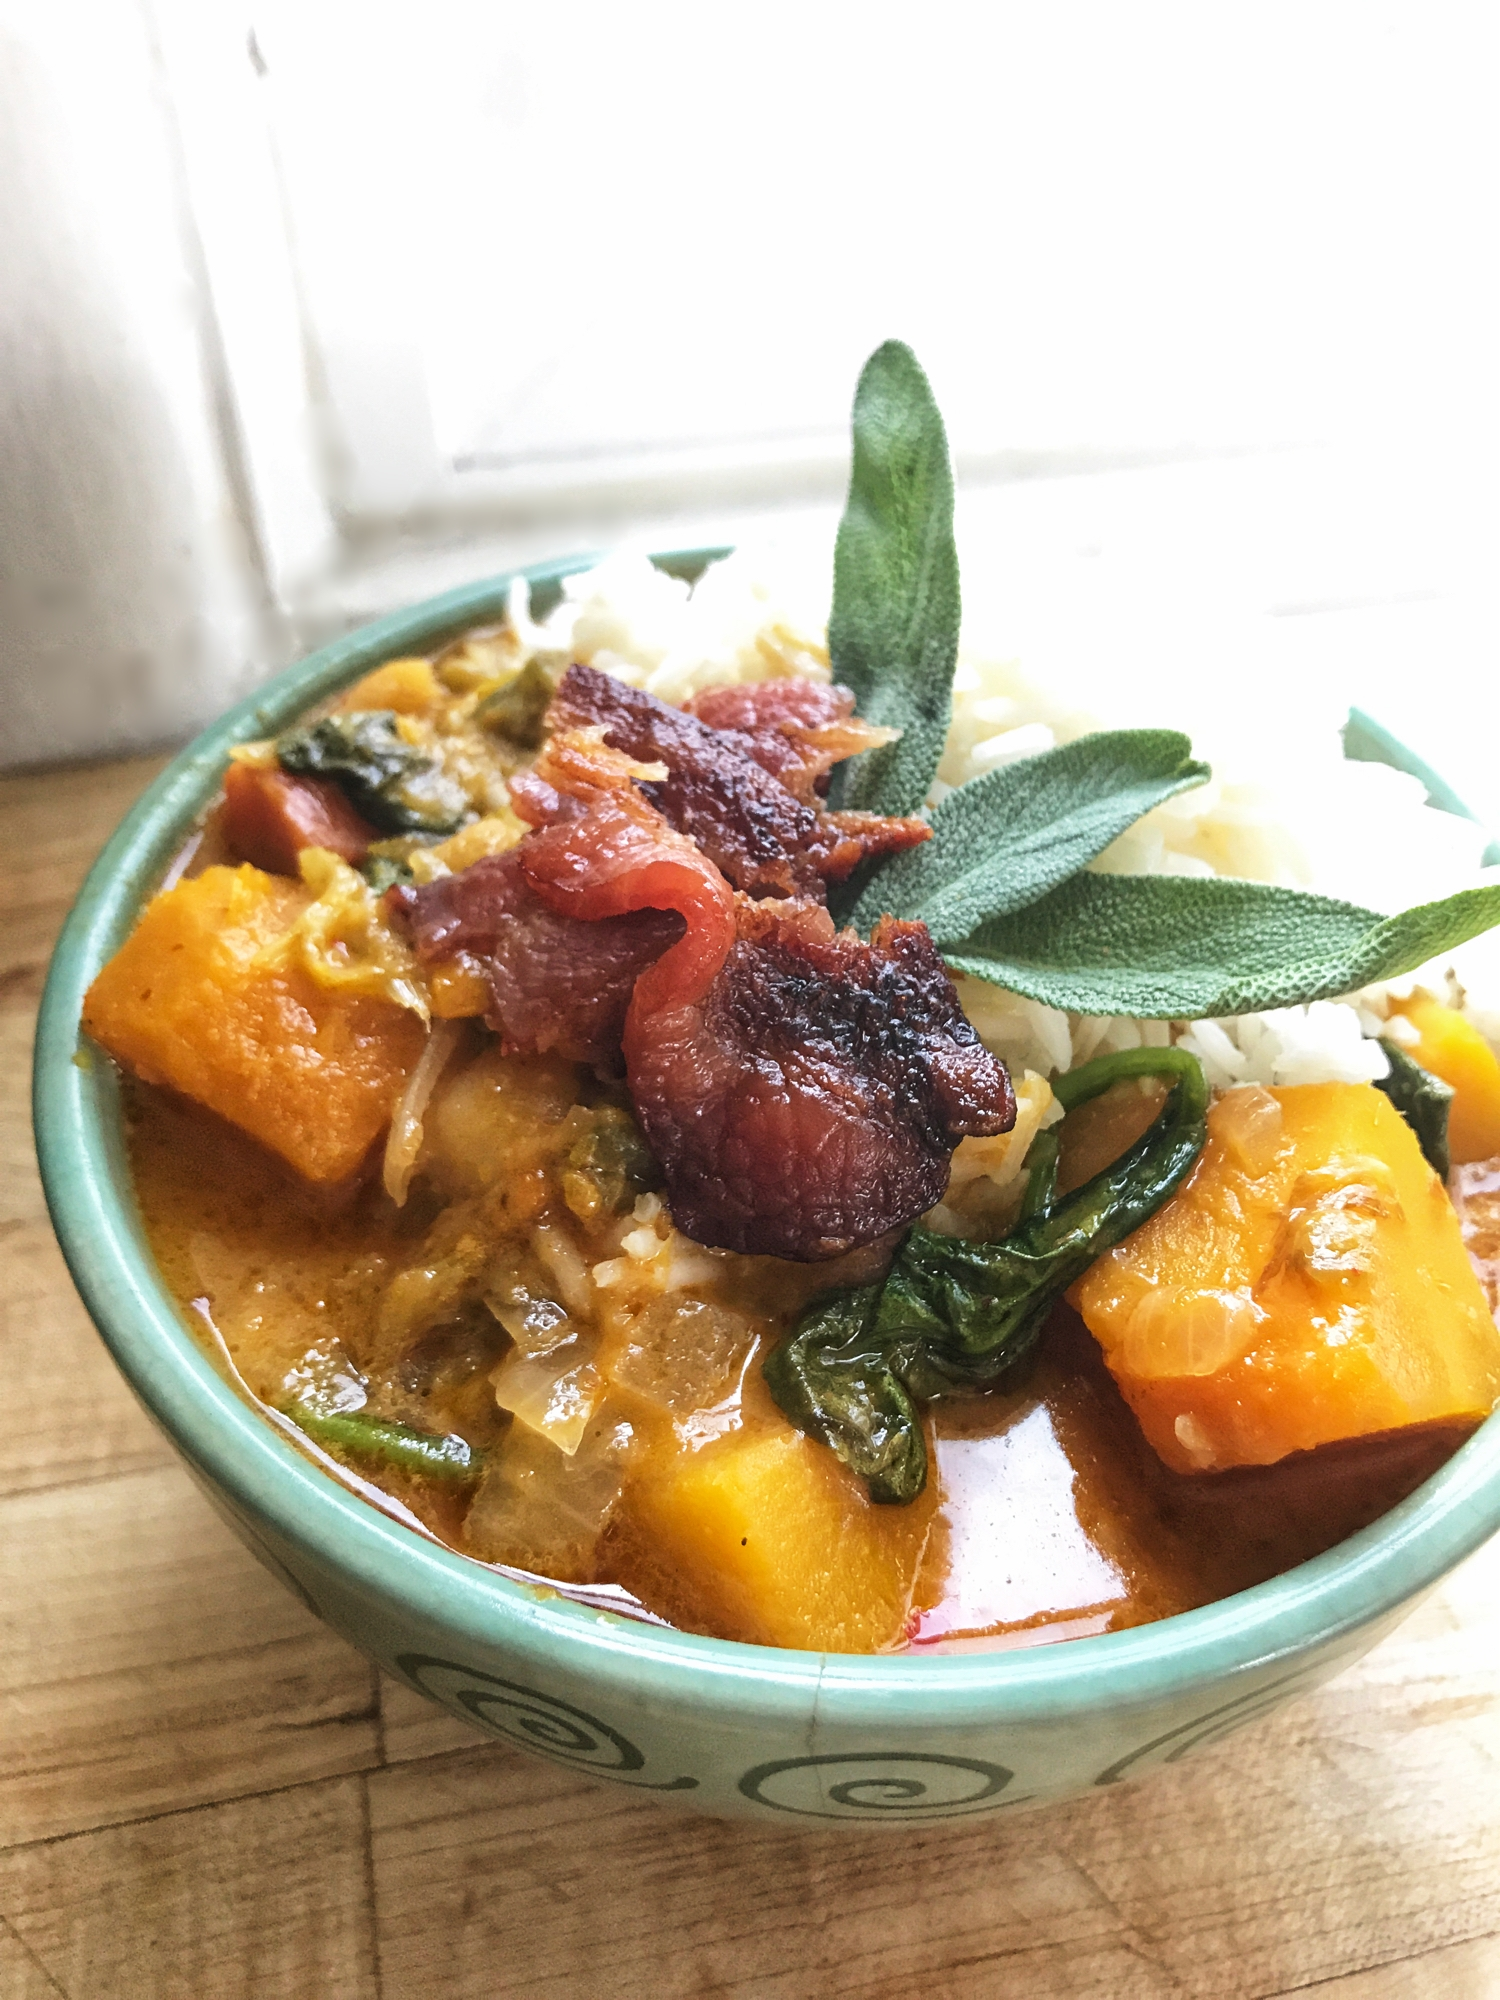 Sage, Bacon and Apples + Curry Paste, Fish Sauce & Coconut Milk = YUM!